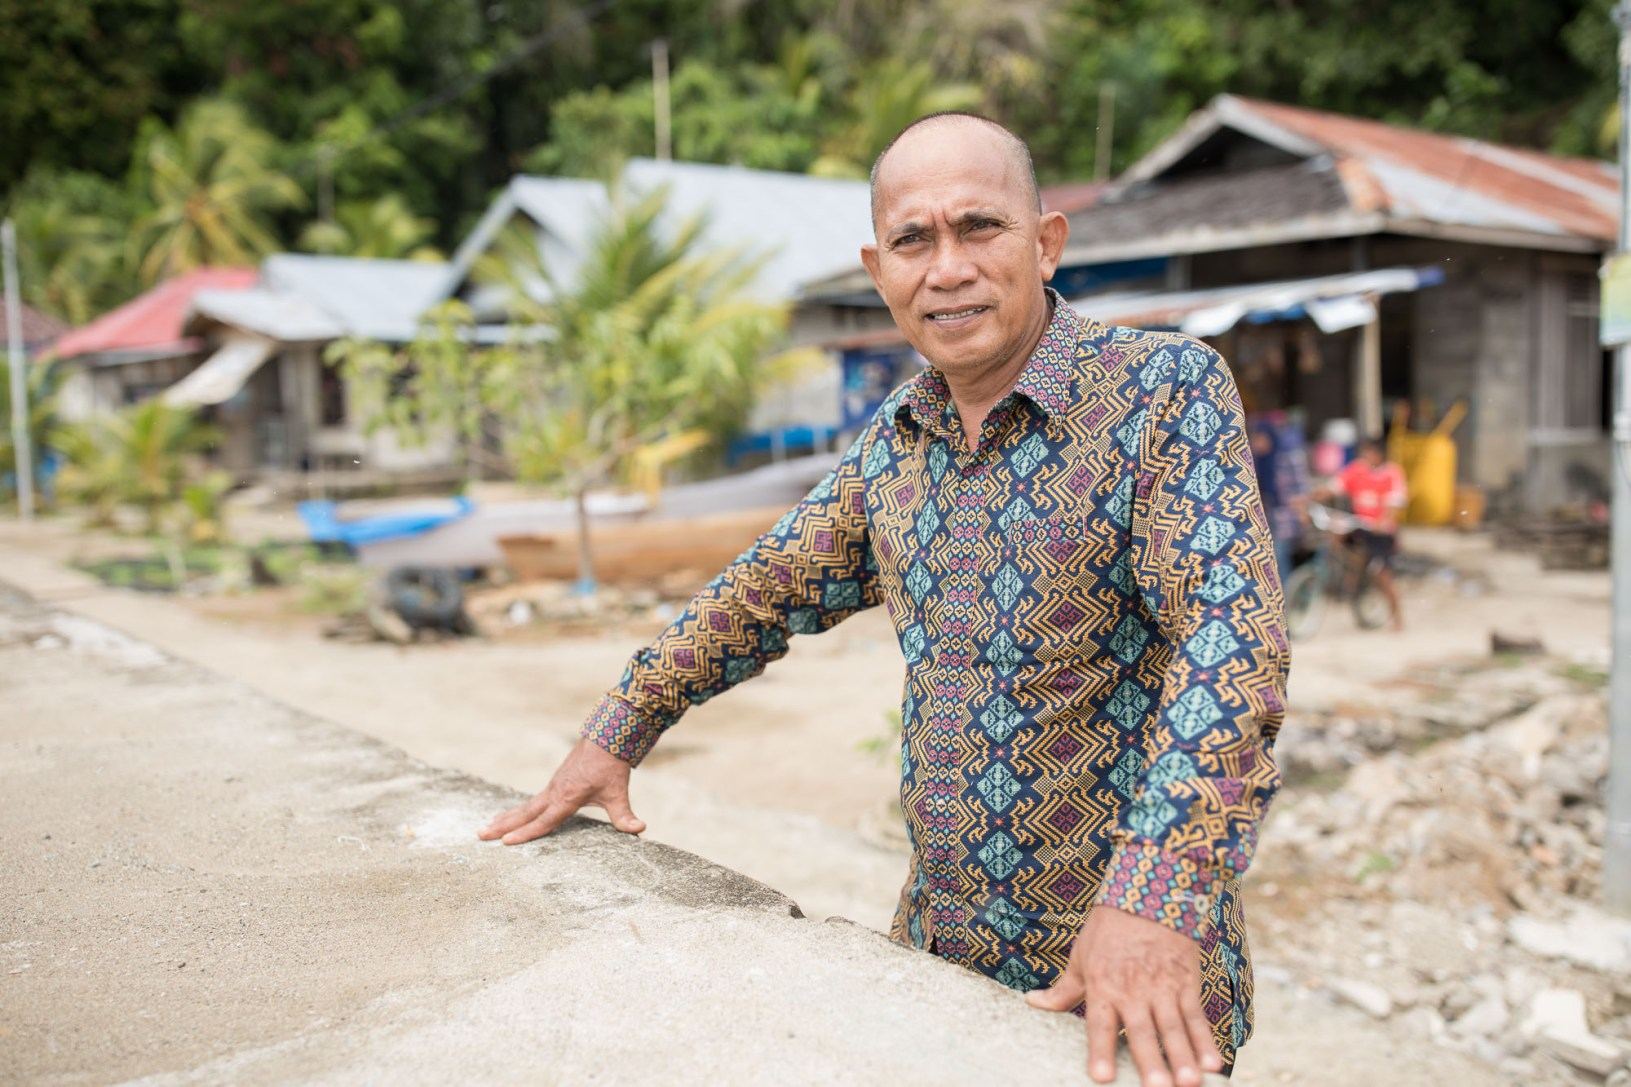 Supriadi (50) is the head of the village of Karampuang, Indonesia. Residents here have received solar-powered electricity for the first time under MCC Green Prosperity project.